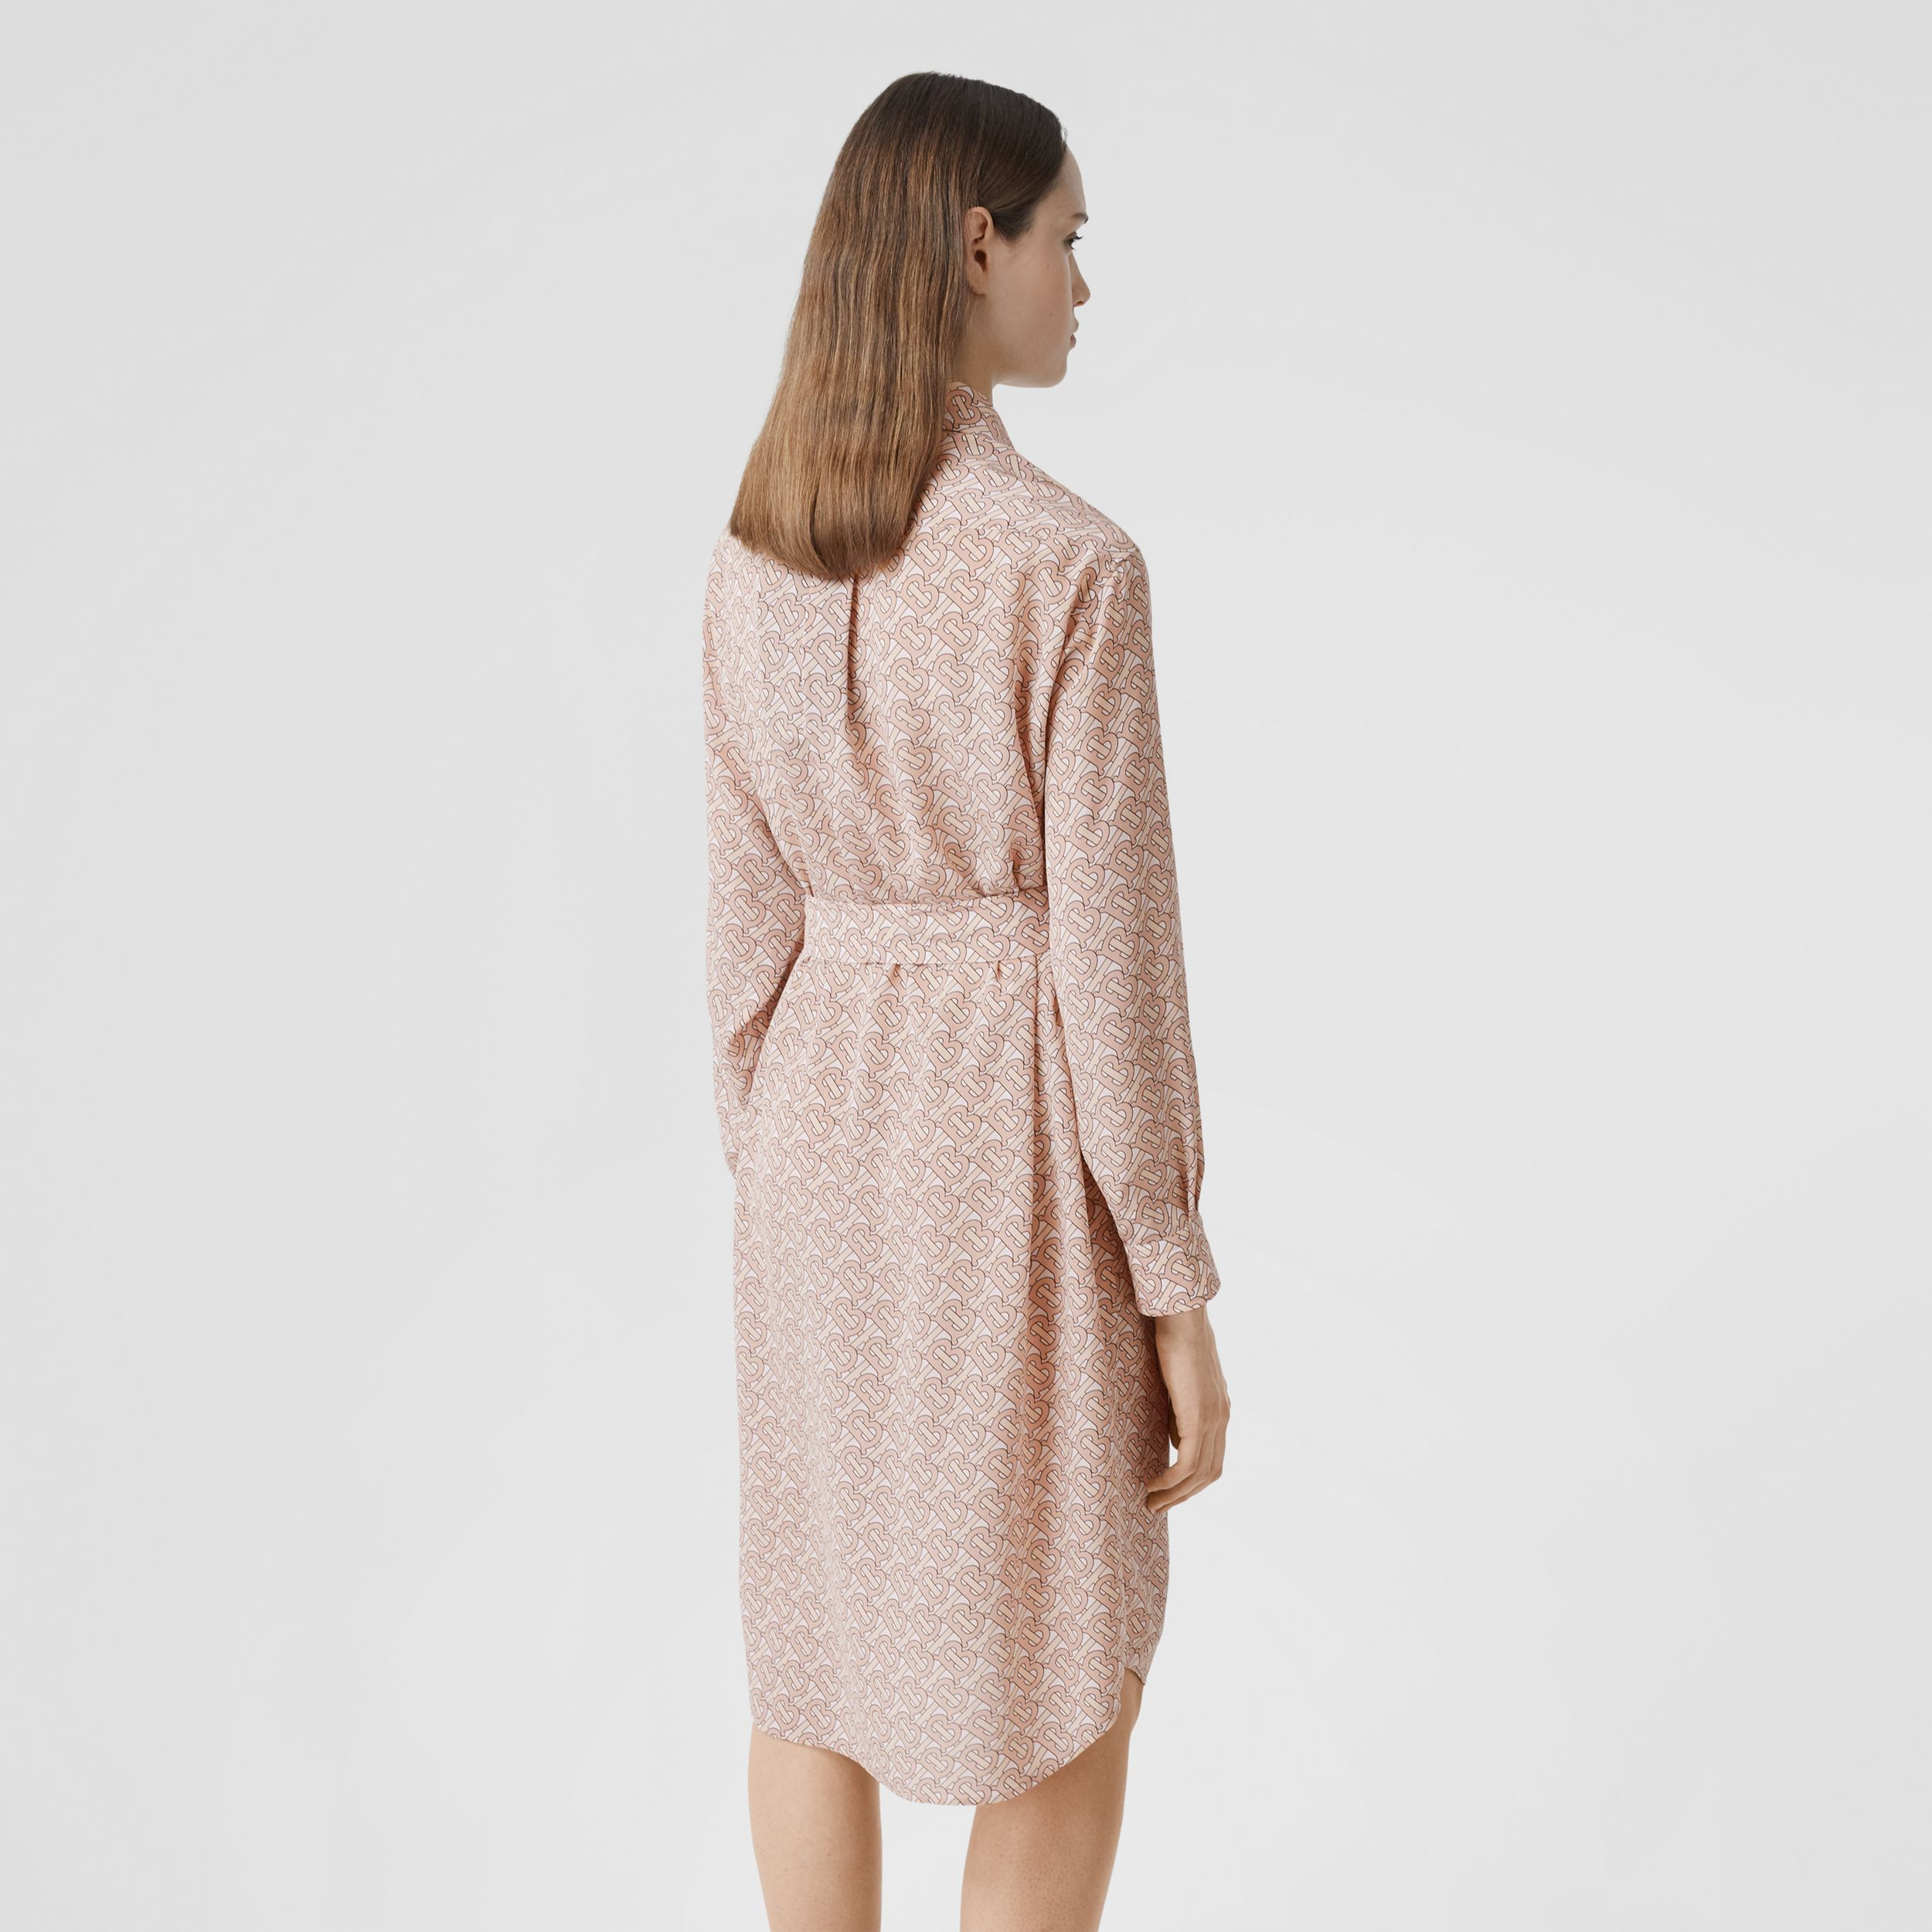 Monogram Print Silk Crepe De Chine Shirt Dress in Pale Copper Pink - Women | Burberry United Kingdom - 3